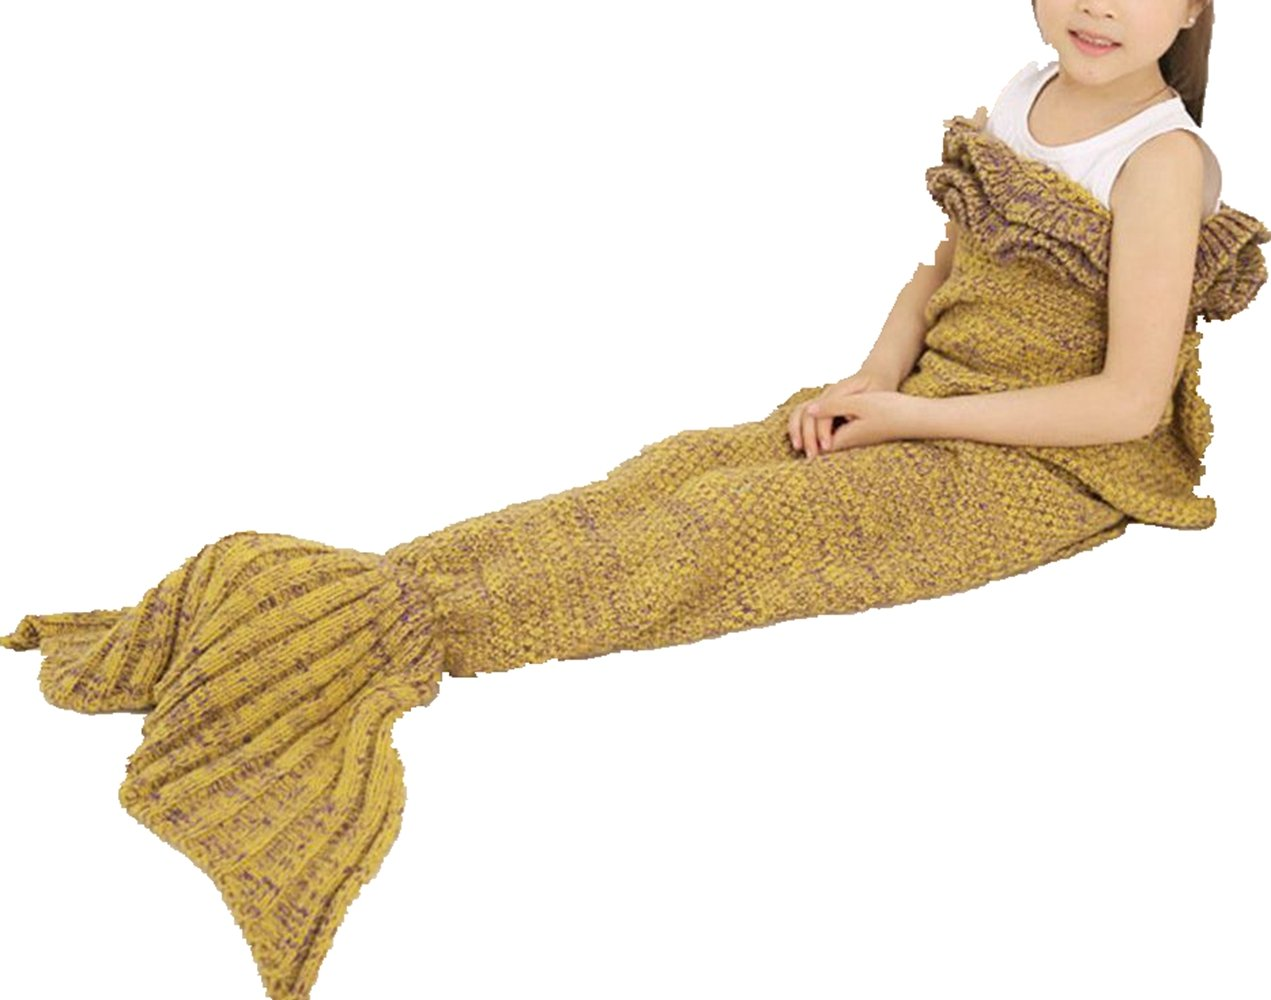 Igeon Soft Hand Crocheted Mermaid Tail Blanket Cocoon Sofa Rug Wrap Quilt for Kids Girls Boys (Yellow) by Igeon